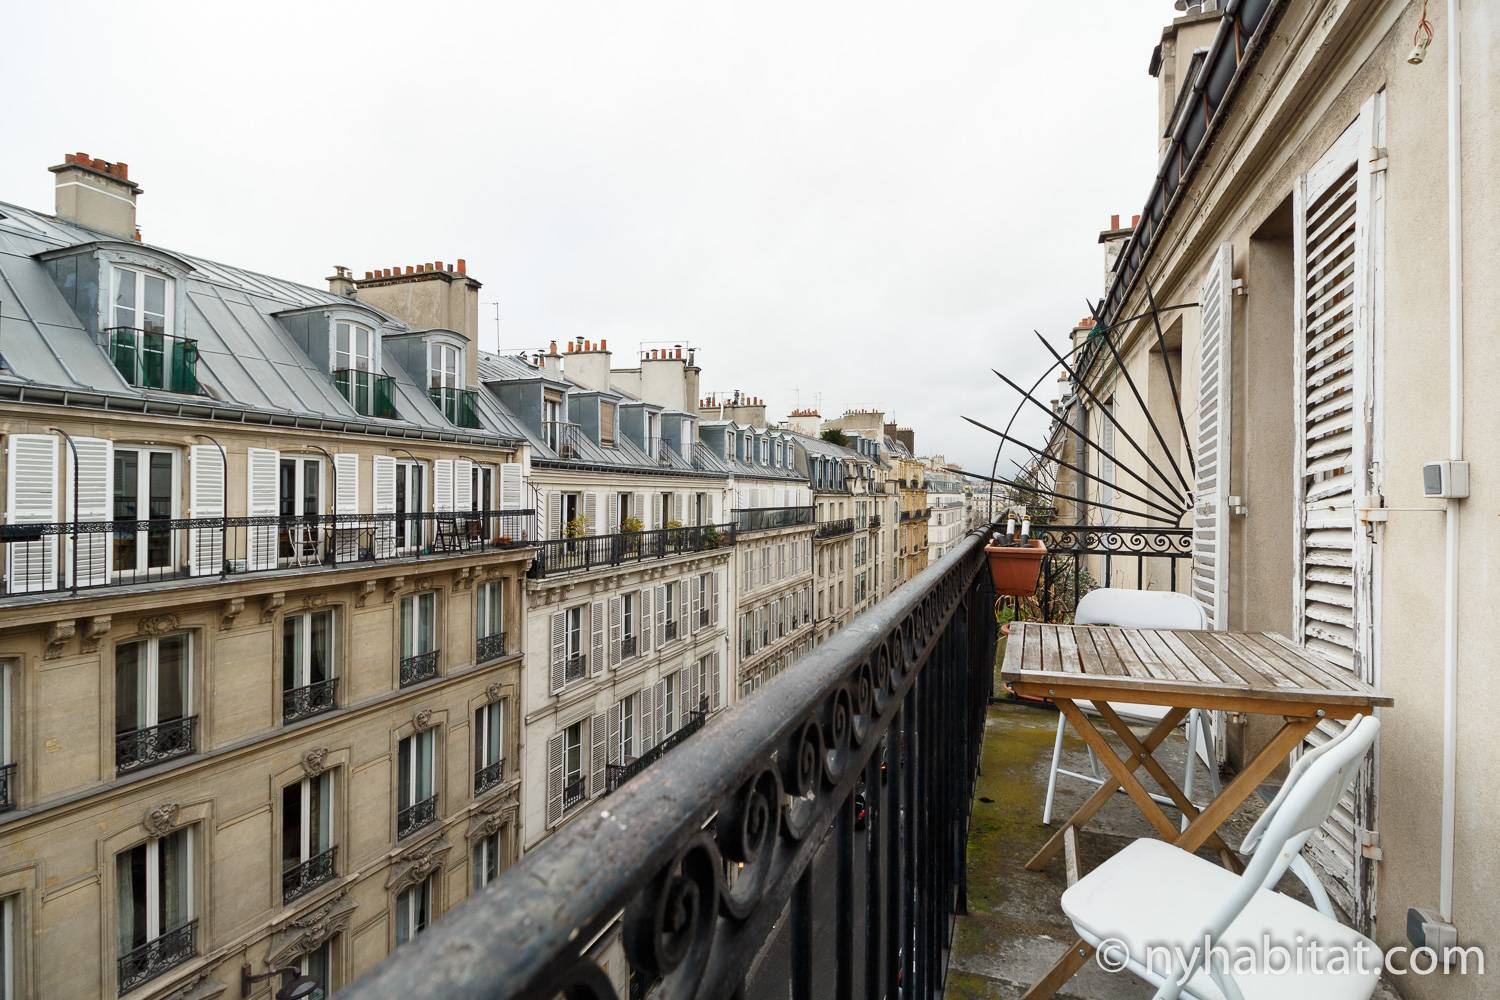 Image of balcony of PA-3311 overlooking Paris rooftops.